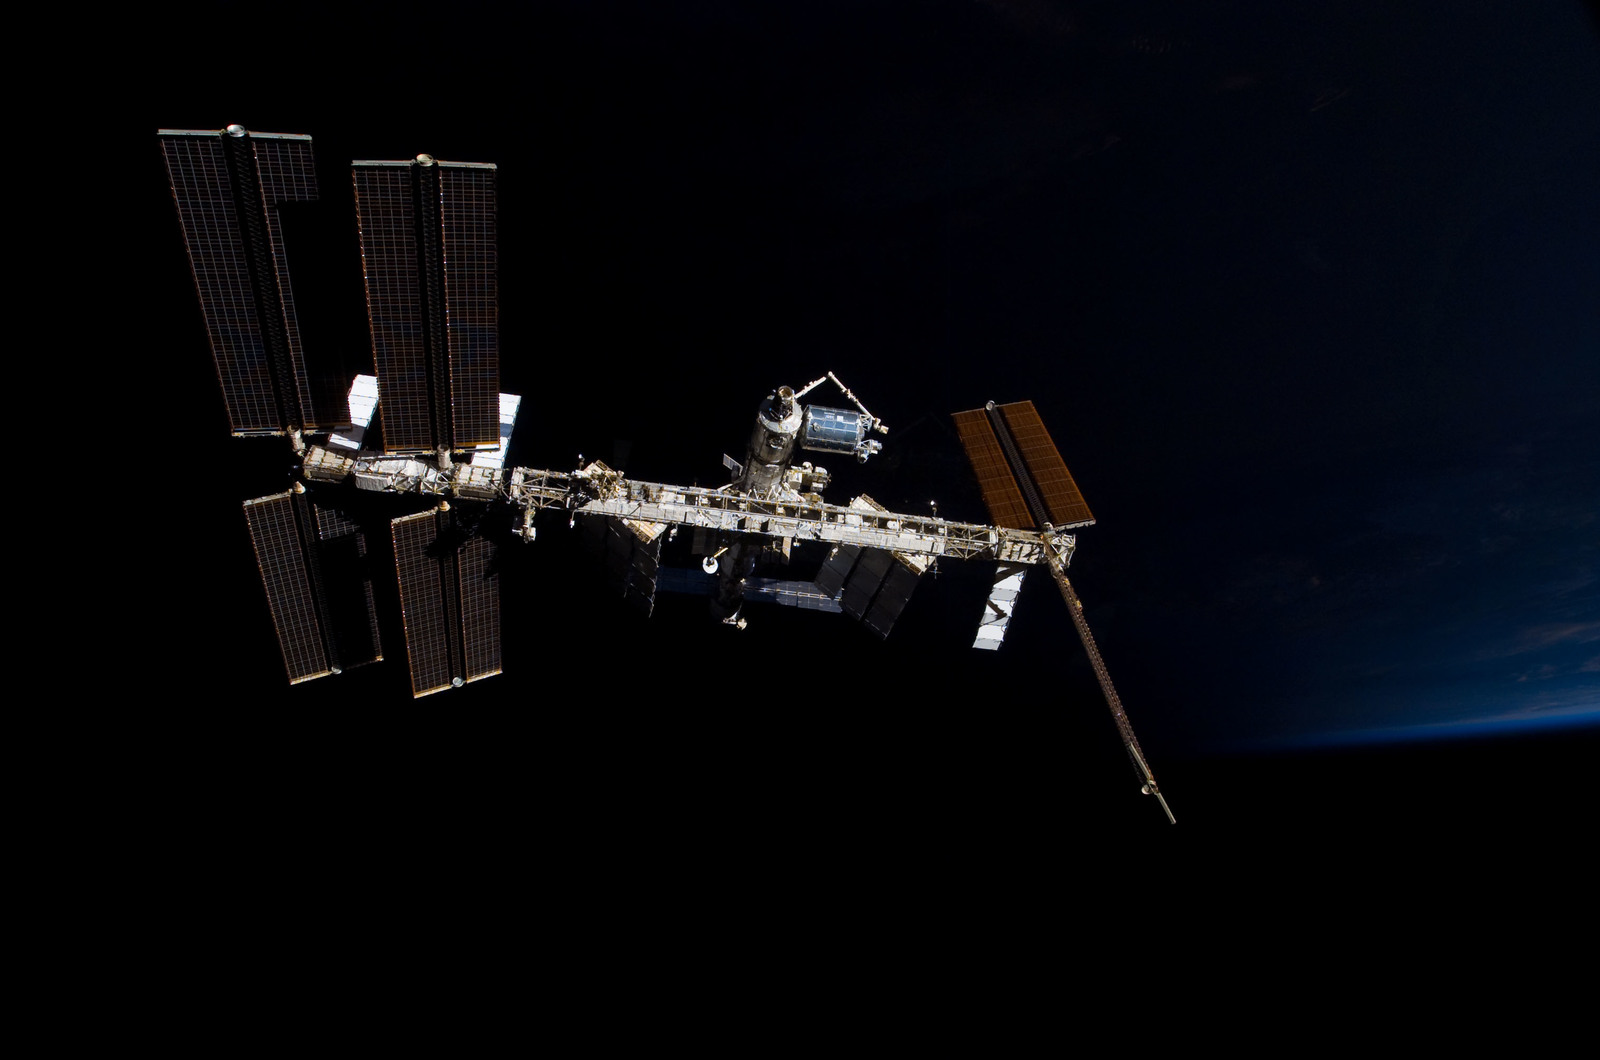 S122E009864 - STS-122 - View of ISS after STS-122 Undocking